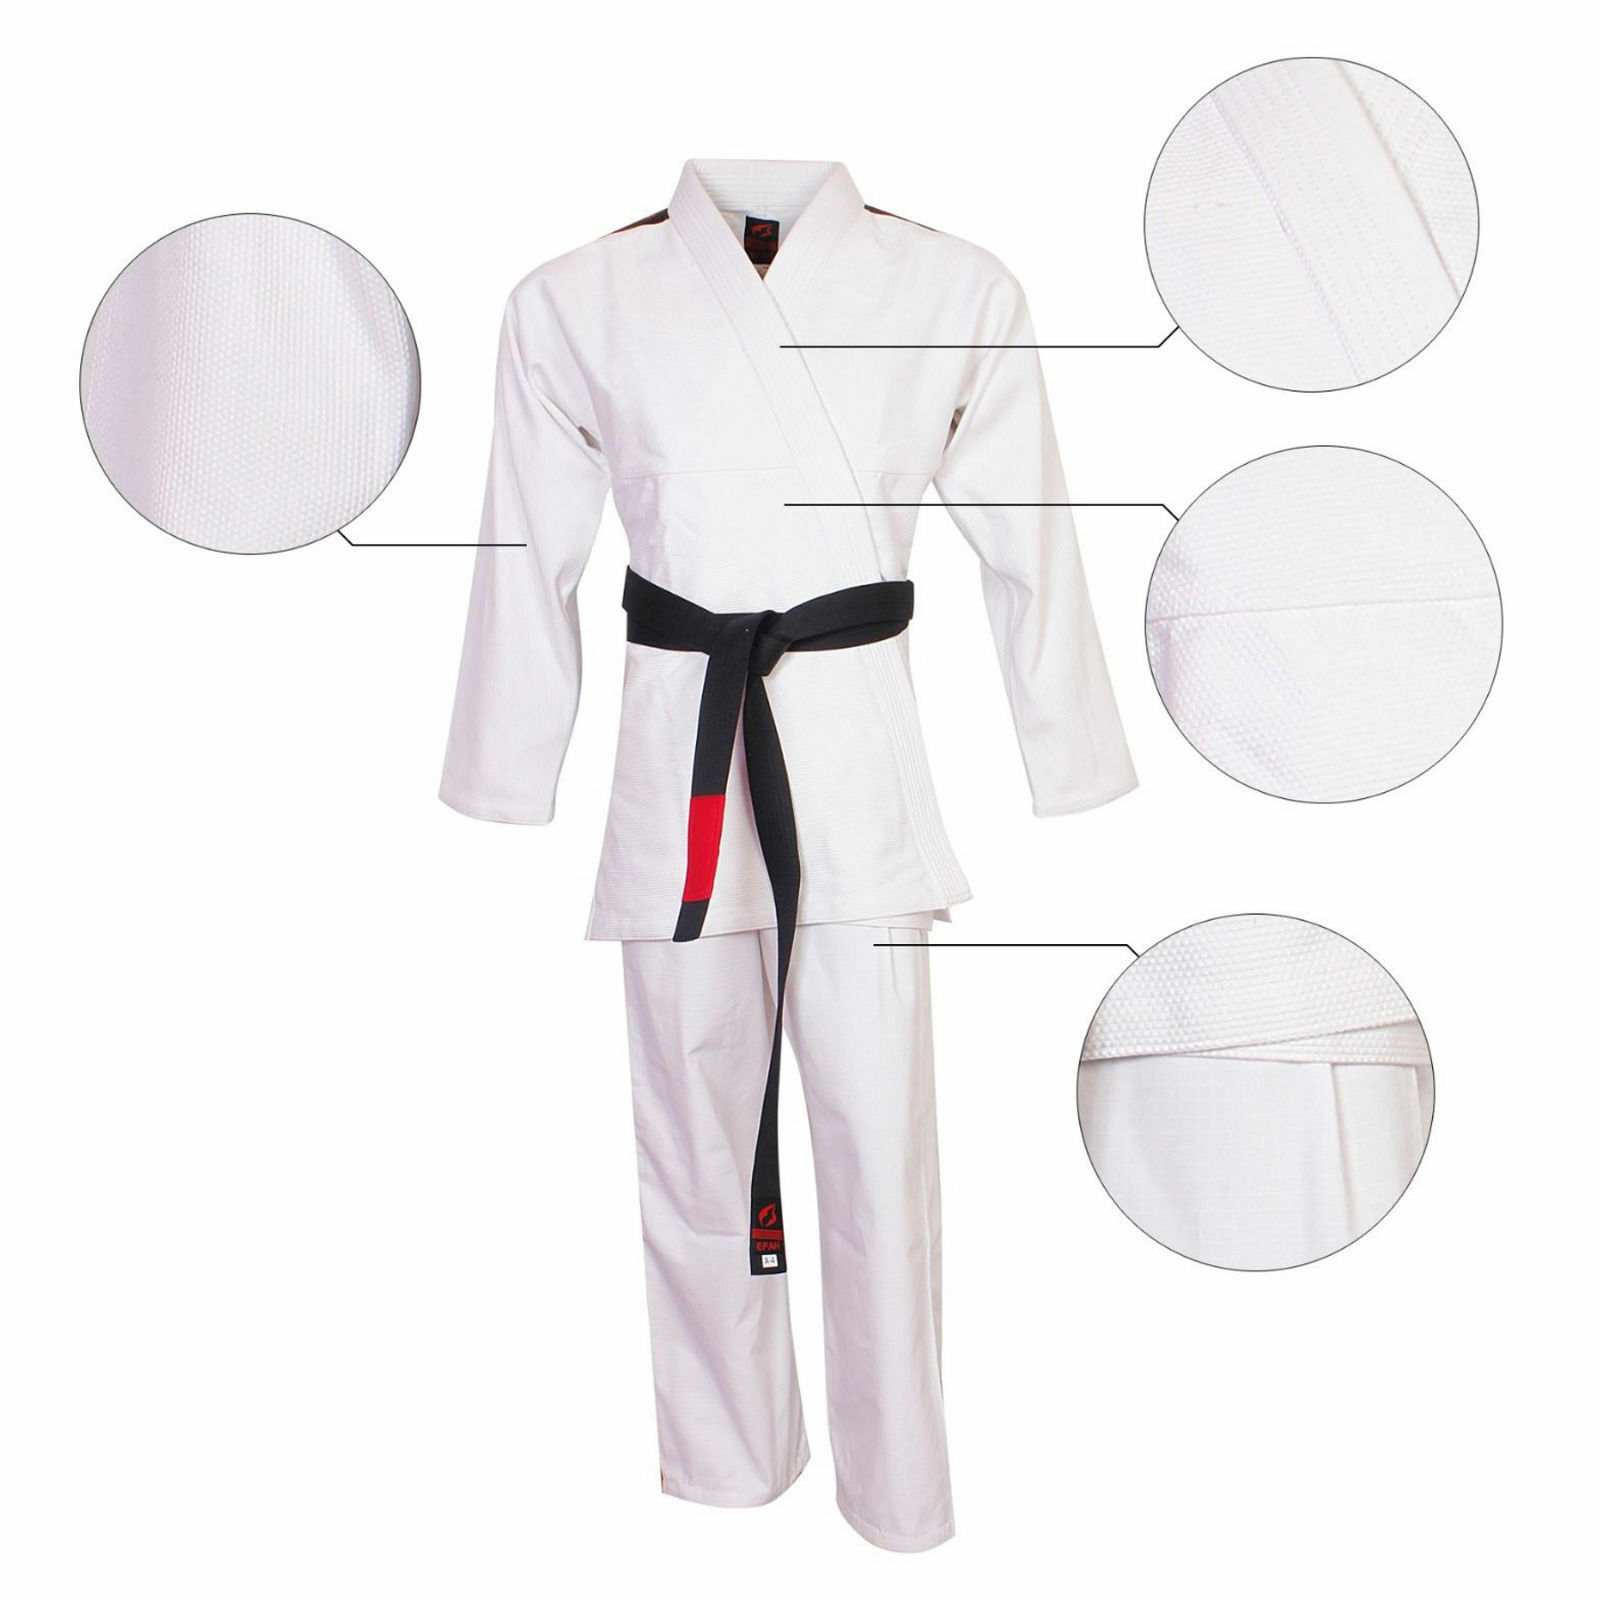 Martial Art Jiu Jitsu Gi Suit Top Quality Pro Design Suit Uniform Wht Free Belt